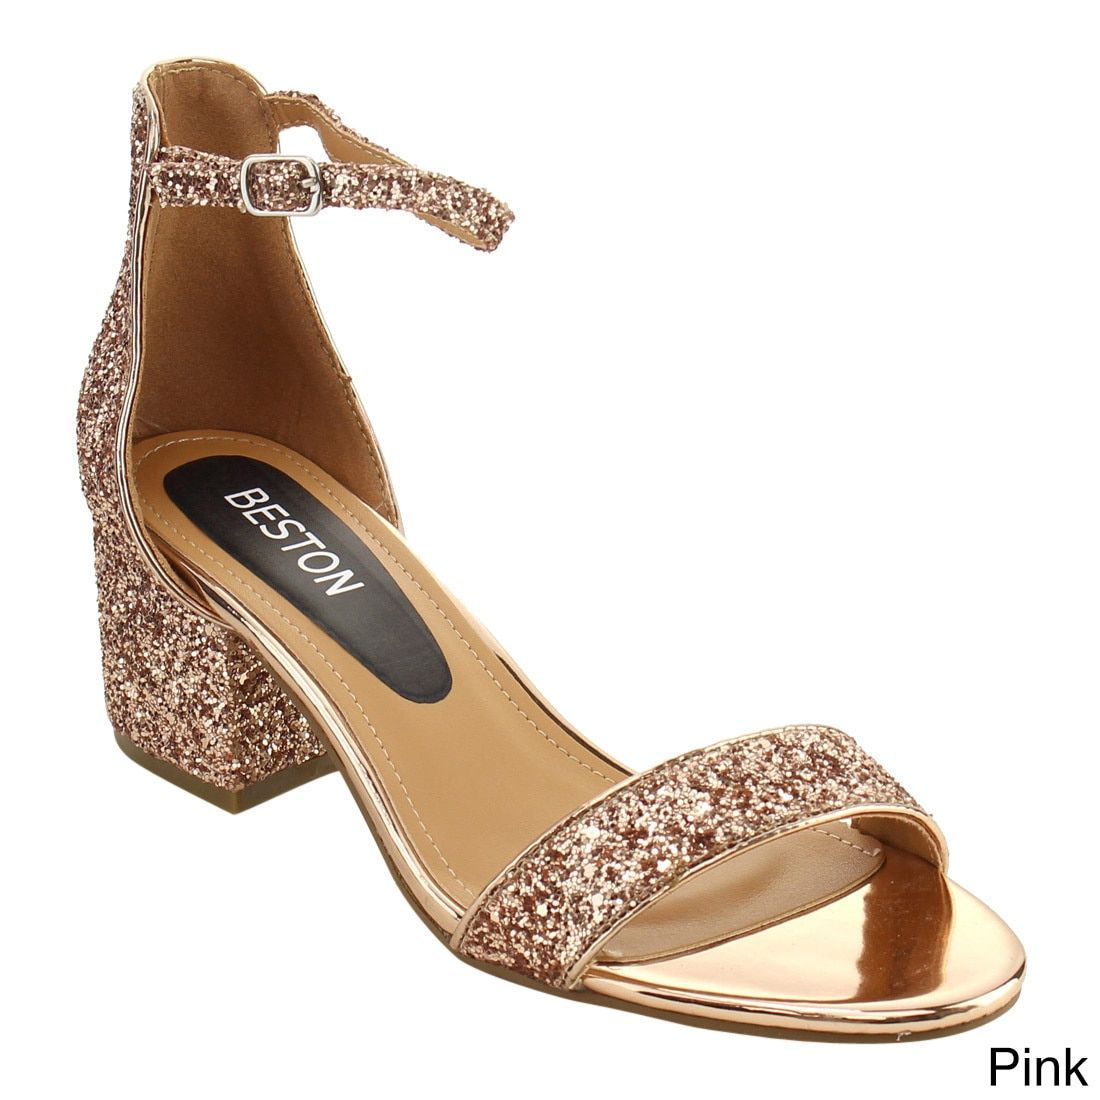 Gold dress shoes for wedding  Beston FH Womenus Single Band Ankle Strap Chunky Heel Dress